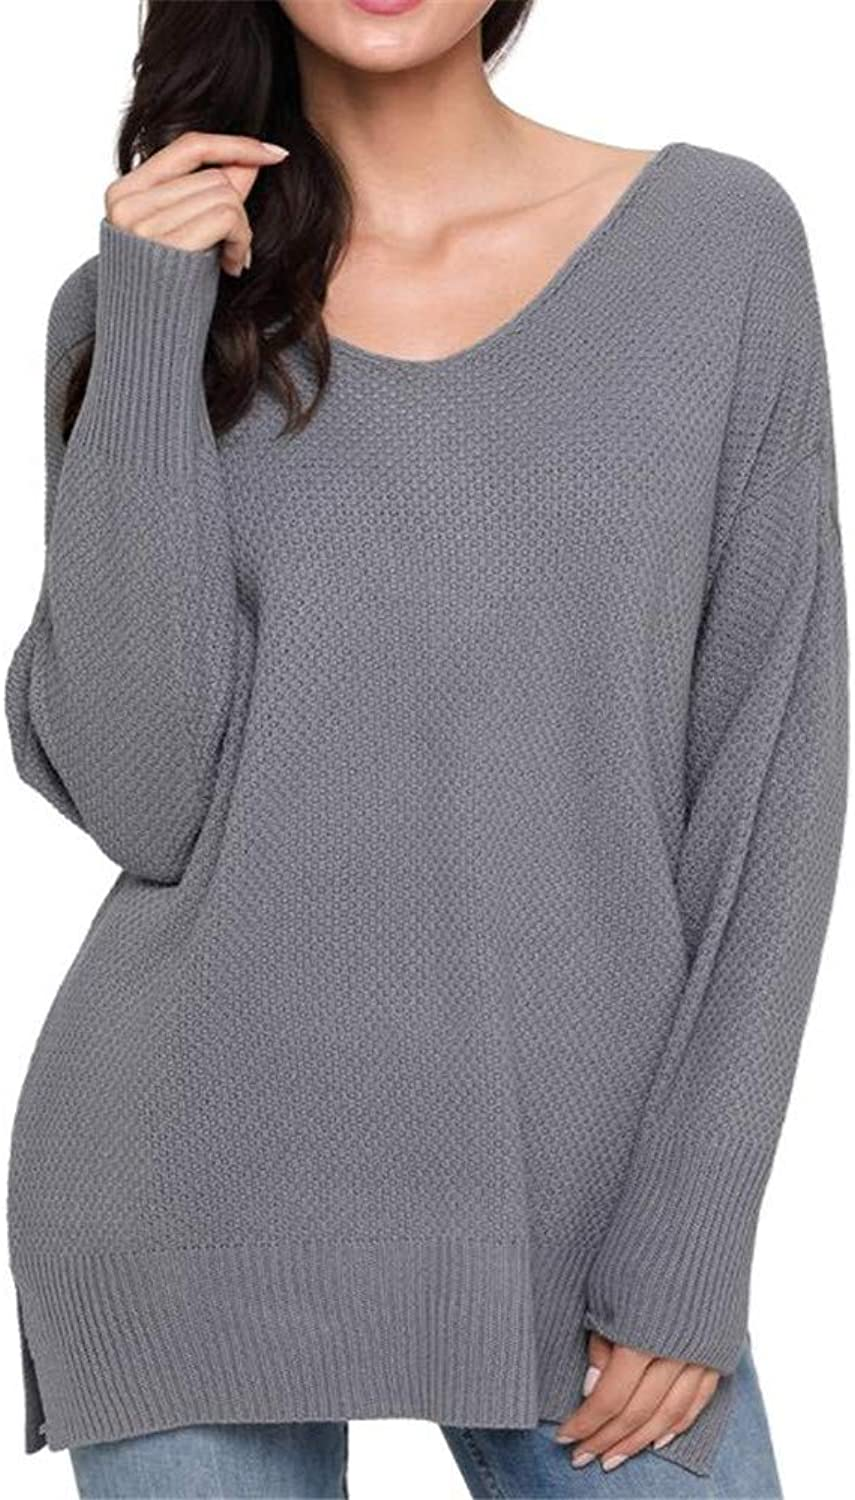 MAZF Autumn and Winter LongSleeved Head Warm Knitted Sweater Women